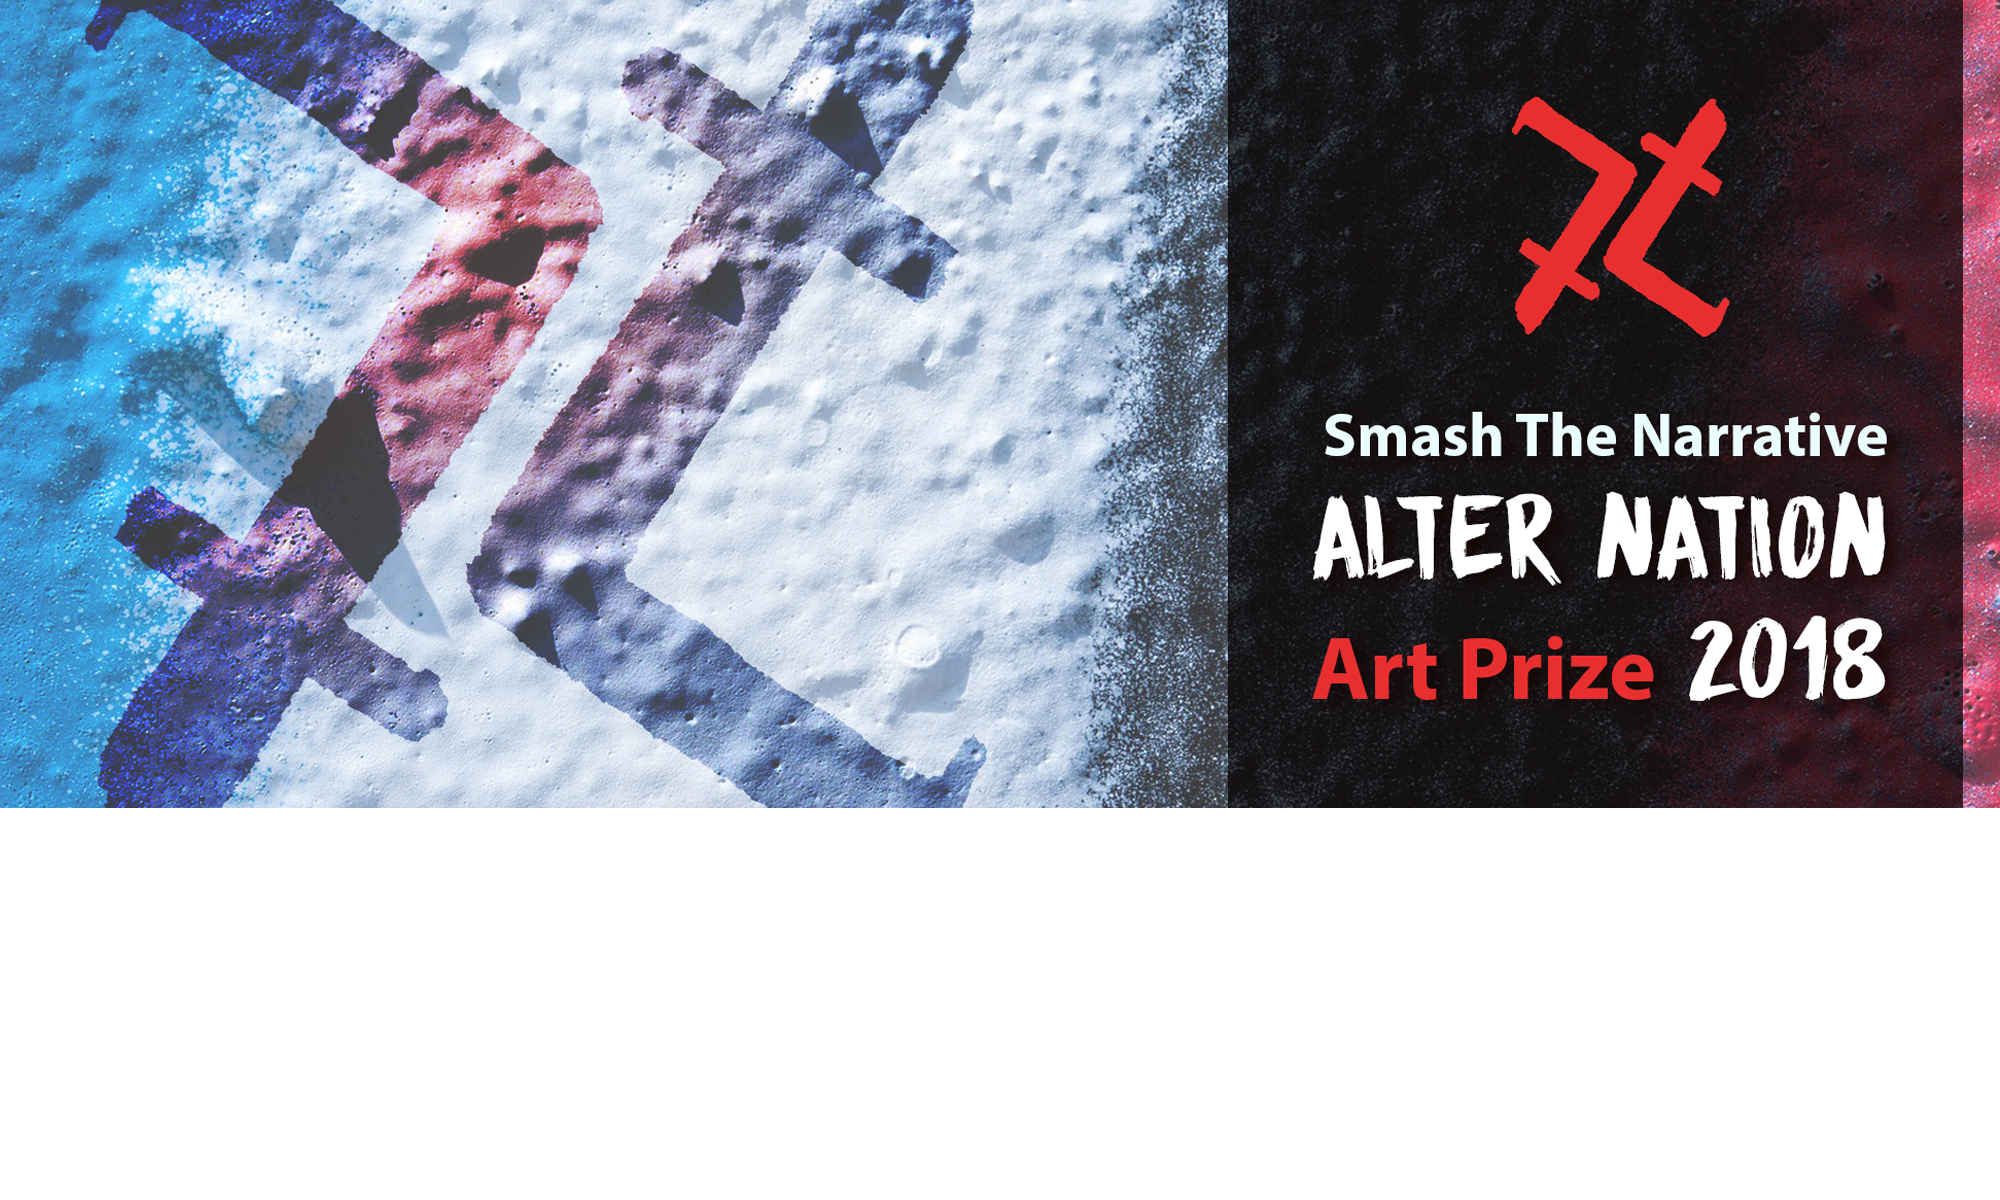 Smash The Narrative - Art Prize